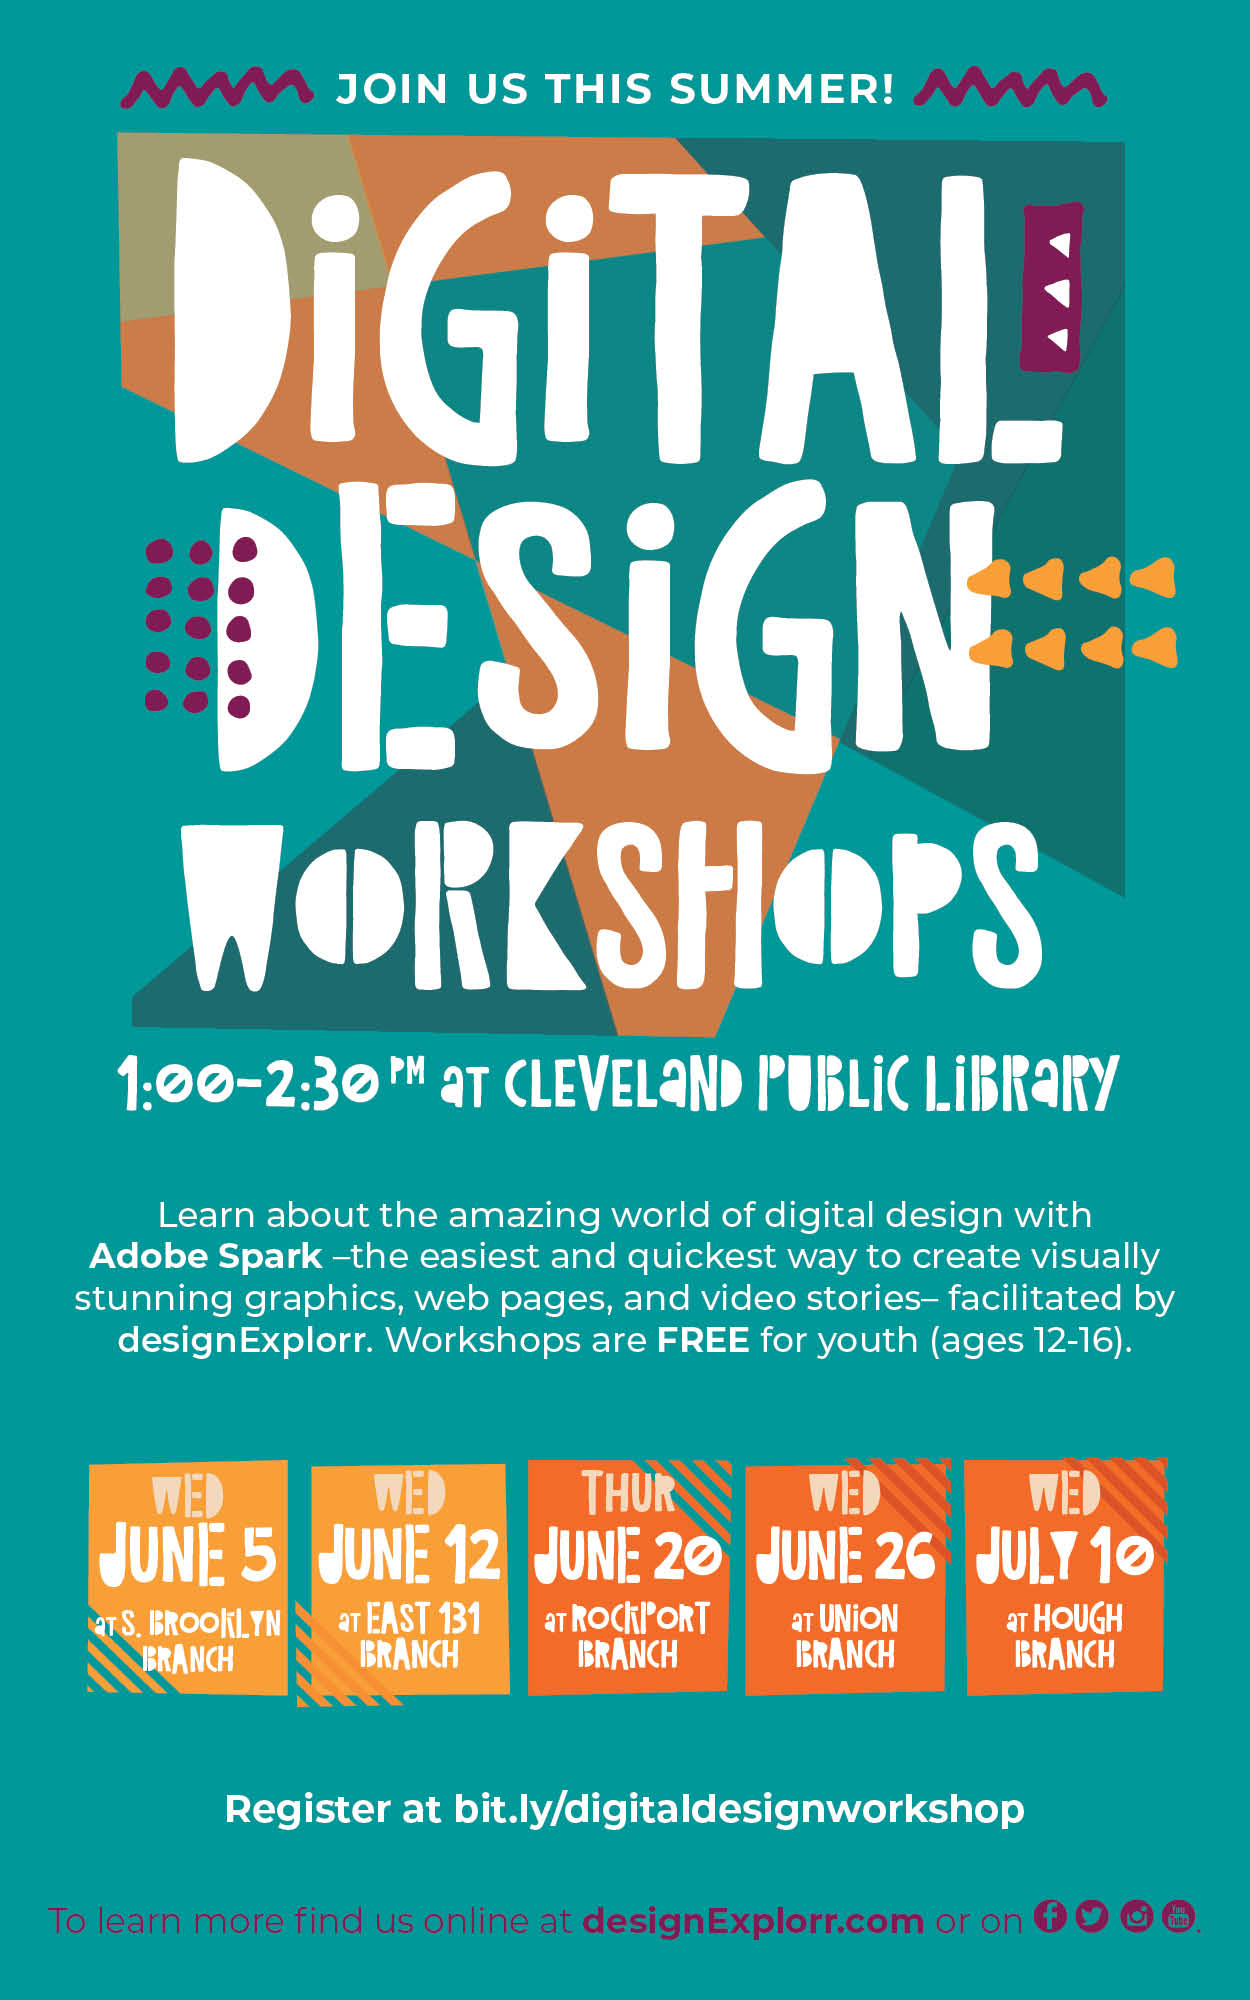 Digital Design Workshops | designExplorr